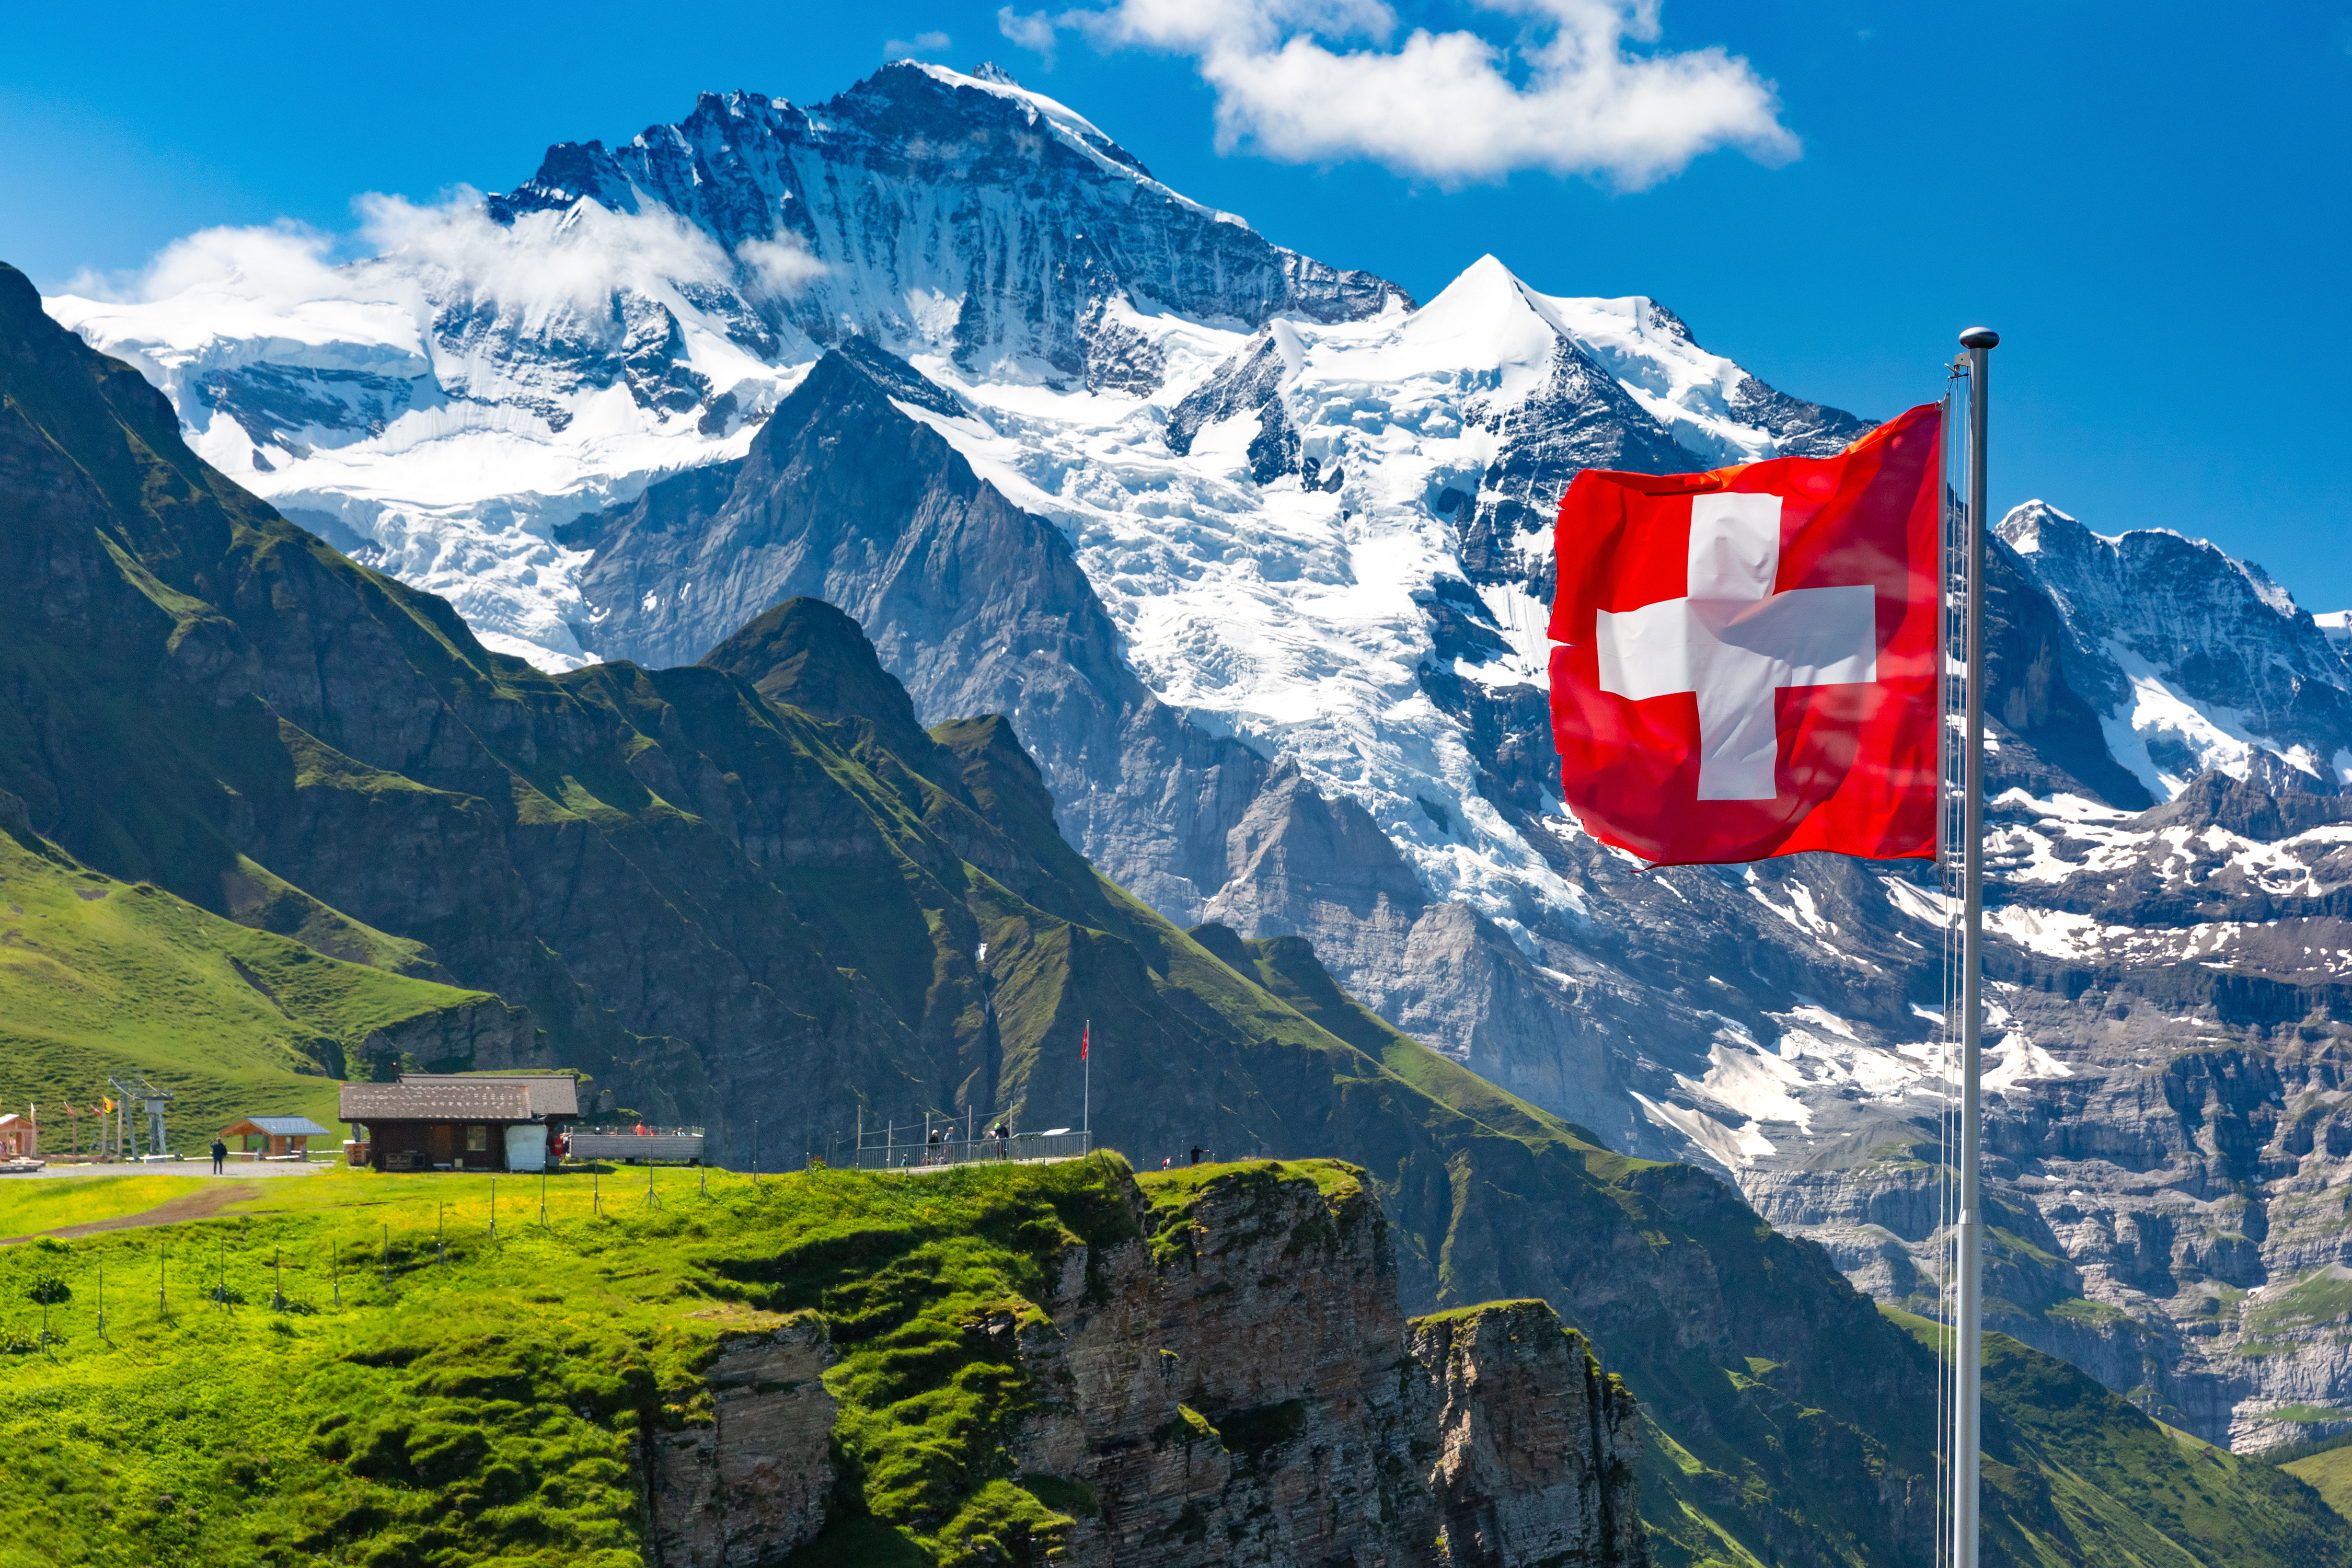 5-Star Hotel in Swiss Alps Starts Accepting Bitcoin and Ethereum